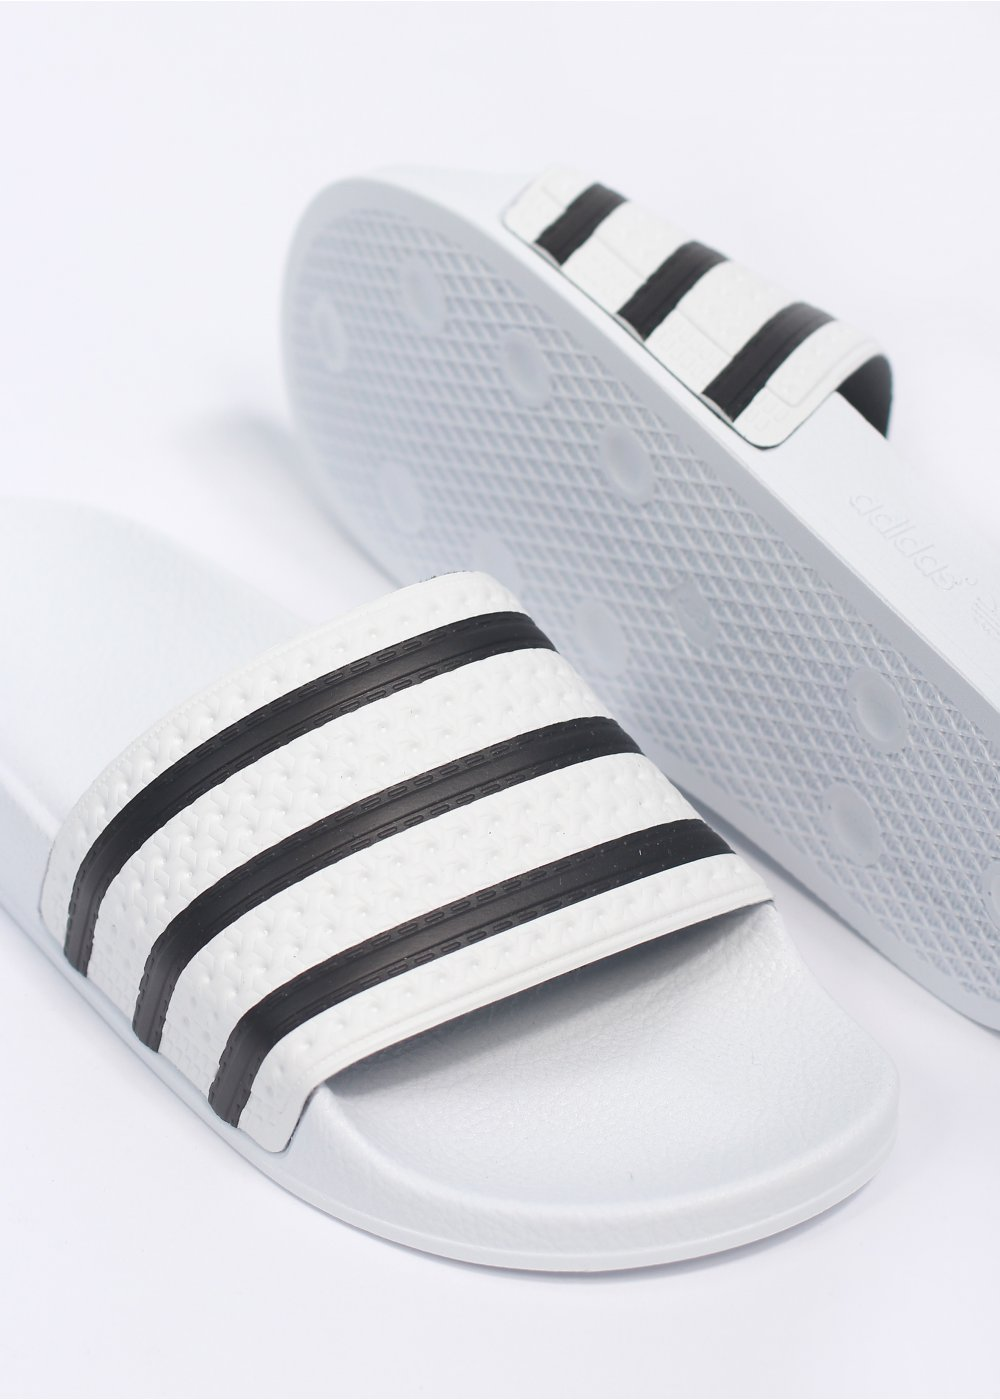 huge selection of 5c66c 11f38 Adilette Flip-Flop Sandals - White   Black